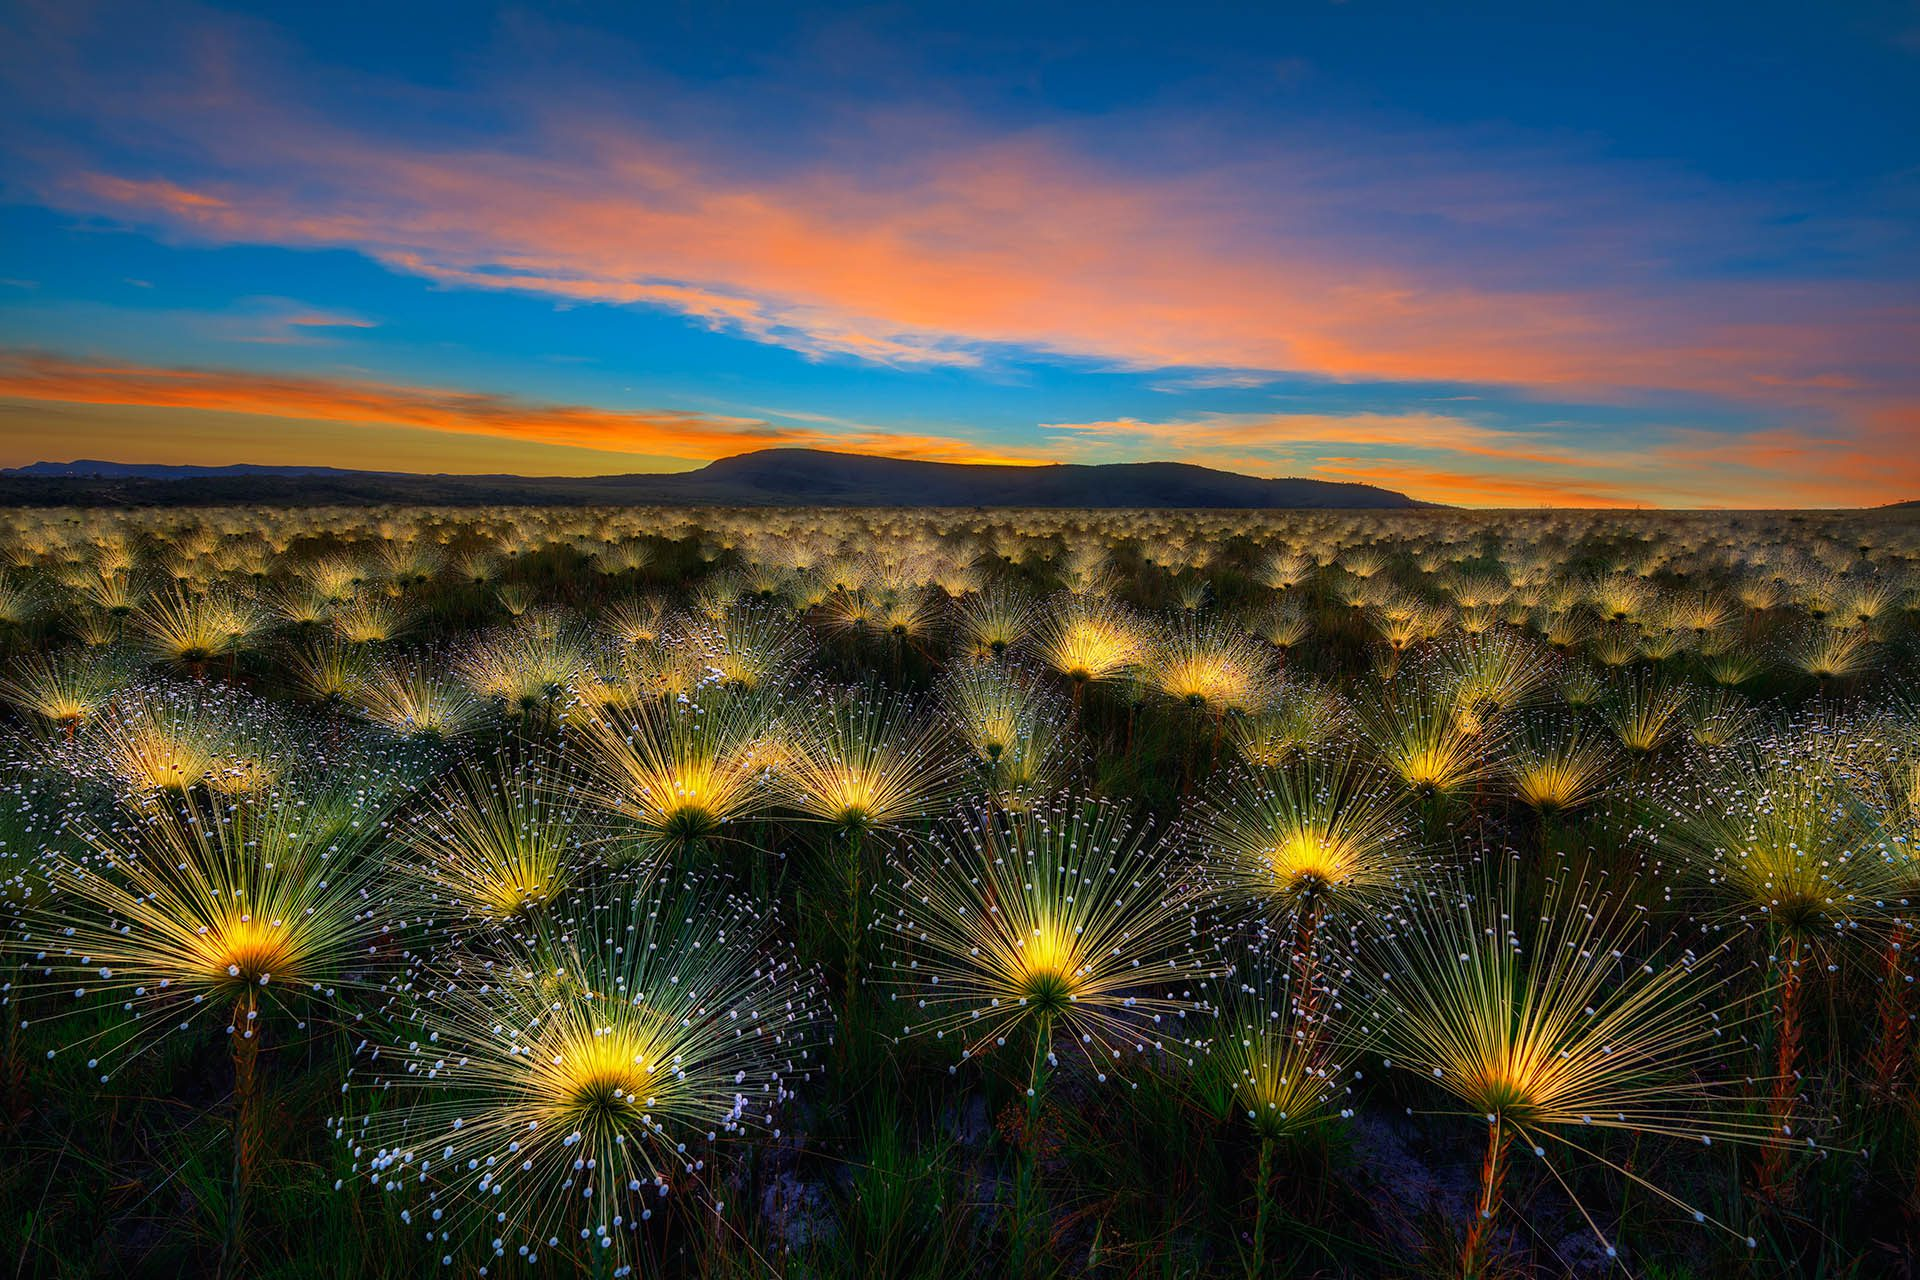 Cerrado Sunrise, the Winner of the International Garden Photographer of the Year Competition 11